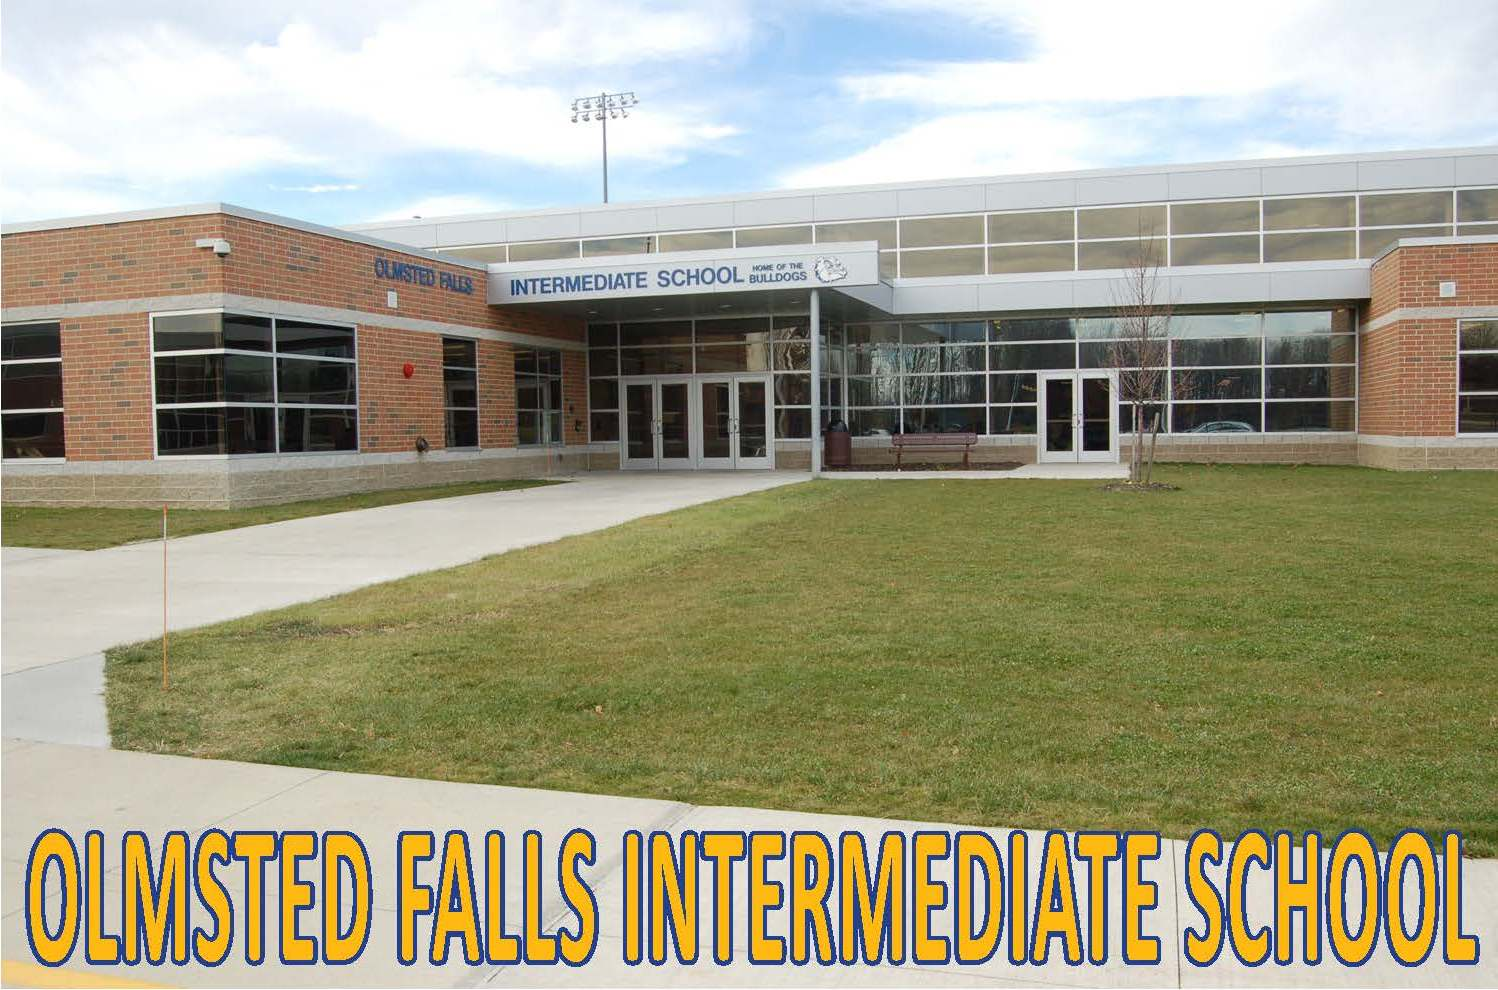 Olmsted Falls Intermediate School